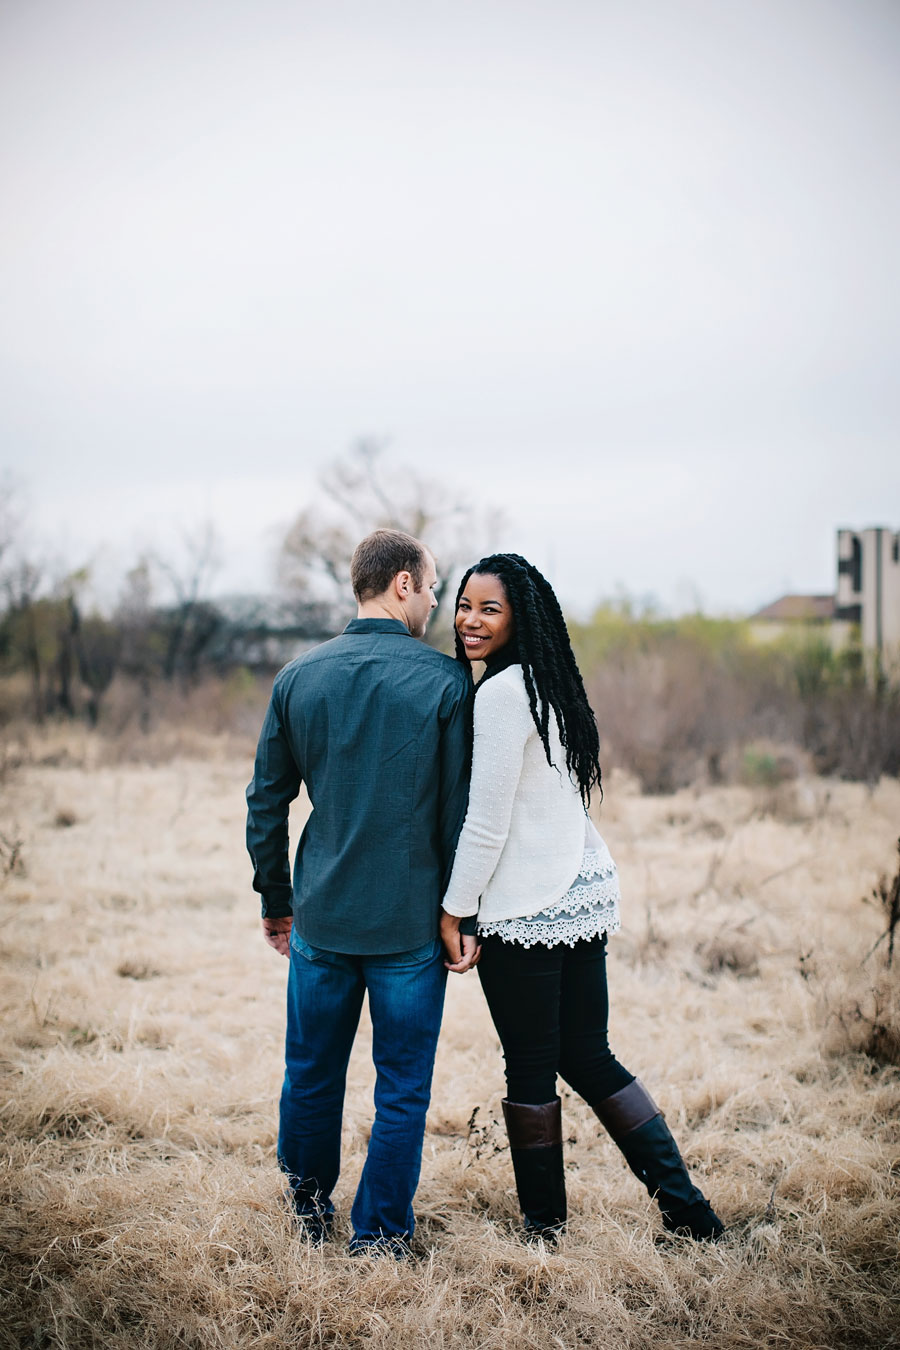 Interracial married couple standing in a field holding hands.